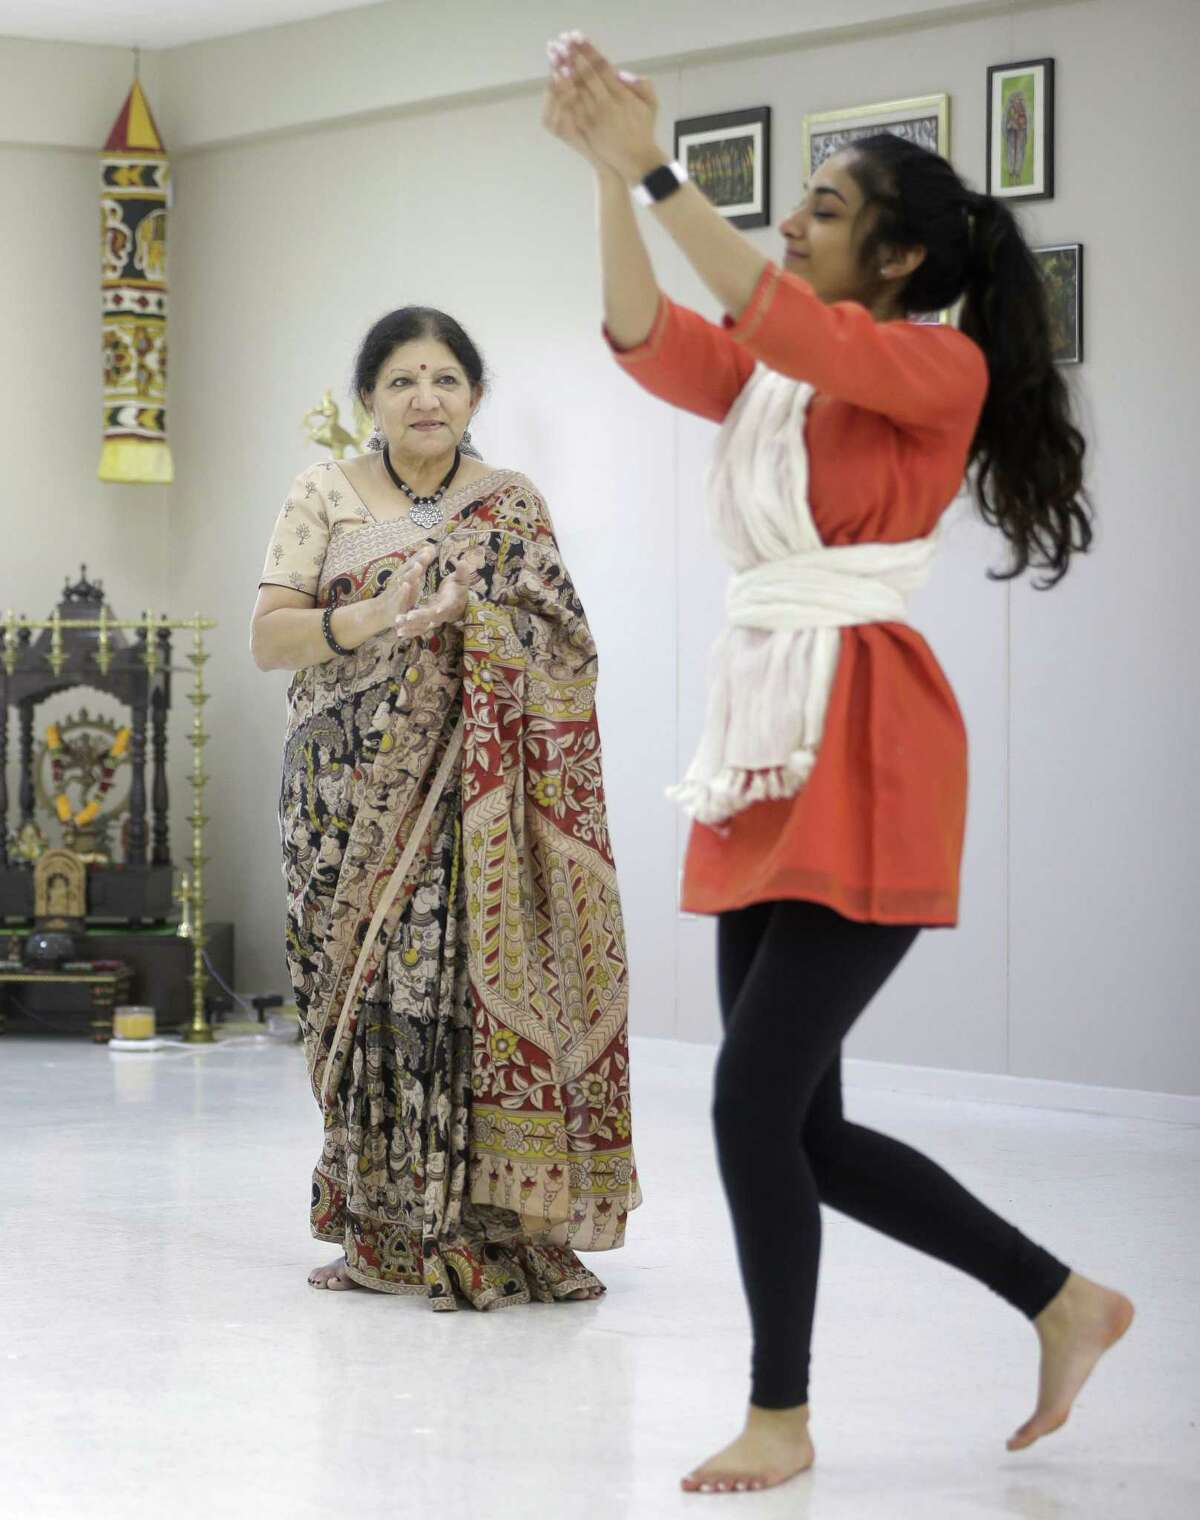 Rathna Kumar, left, works with her dance student, Kanika Draksharam, at the Anjali Center for Performing Arts, 2615 Cordes Dr., Tuesday, March 13, 2018, in Sugar Land. ( Melissa Phillip / Houston Chronicle )